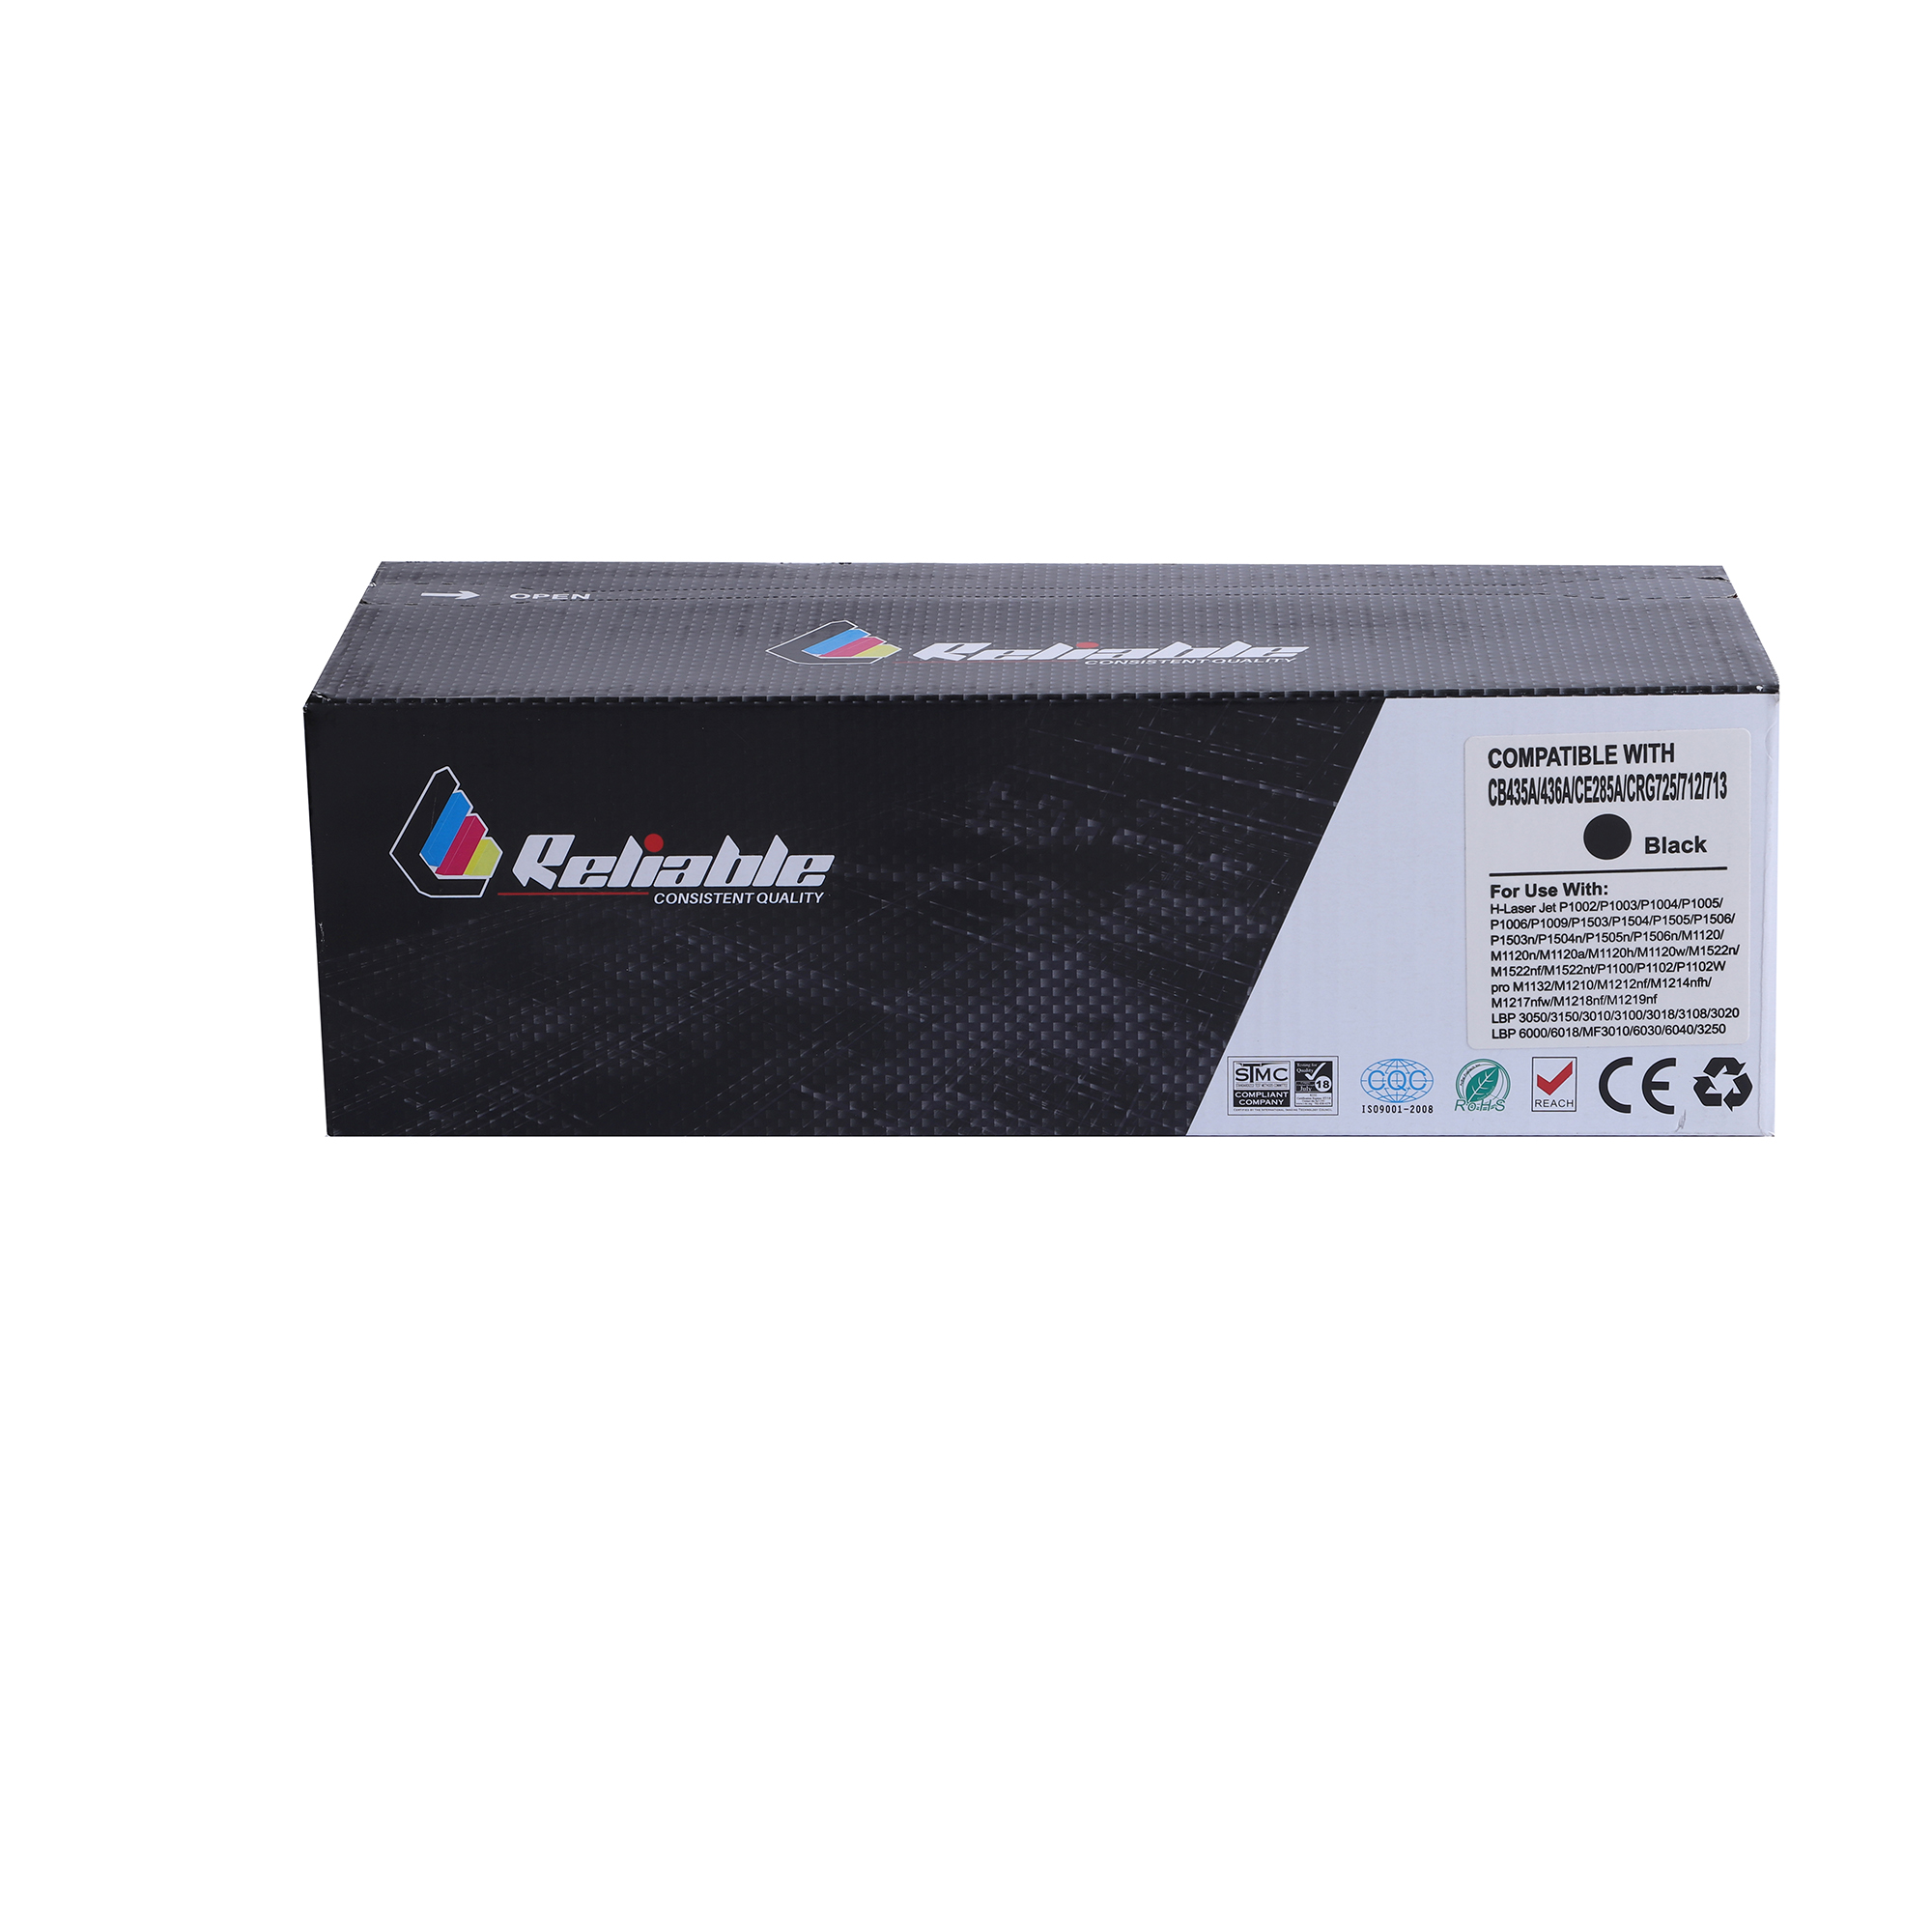 Reliable 85A (CE285A) / 35A (CB435A) / 36A (CB436A) / 725 / 712 / 713 Compatible Toner Cartridge - Black